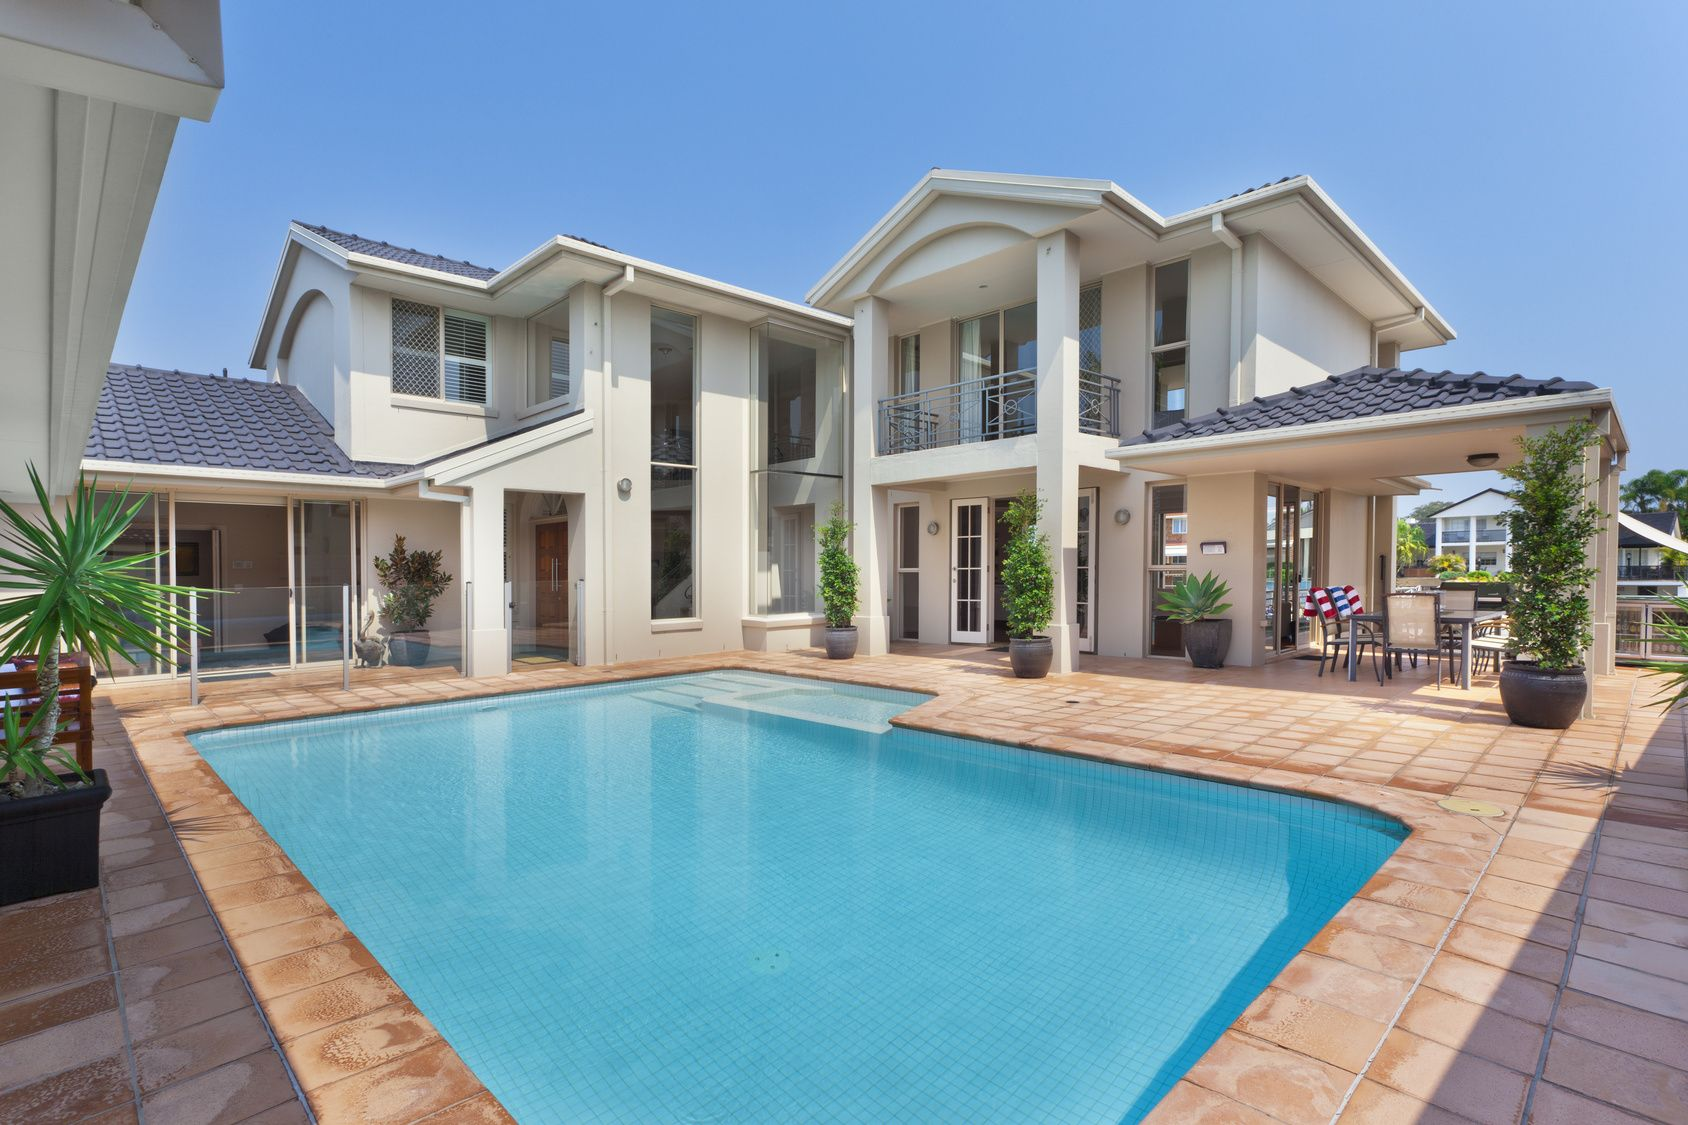 house - Big Houses With Pools For Sale